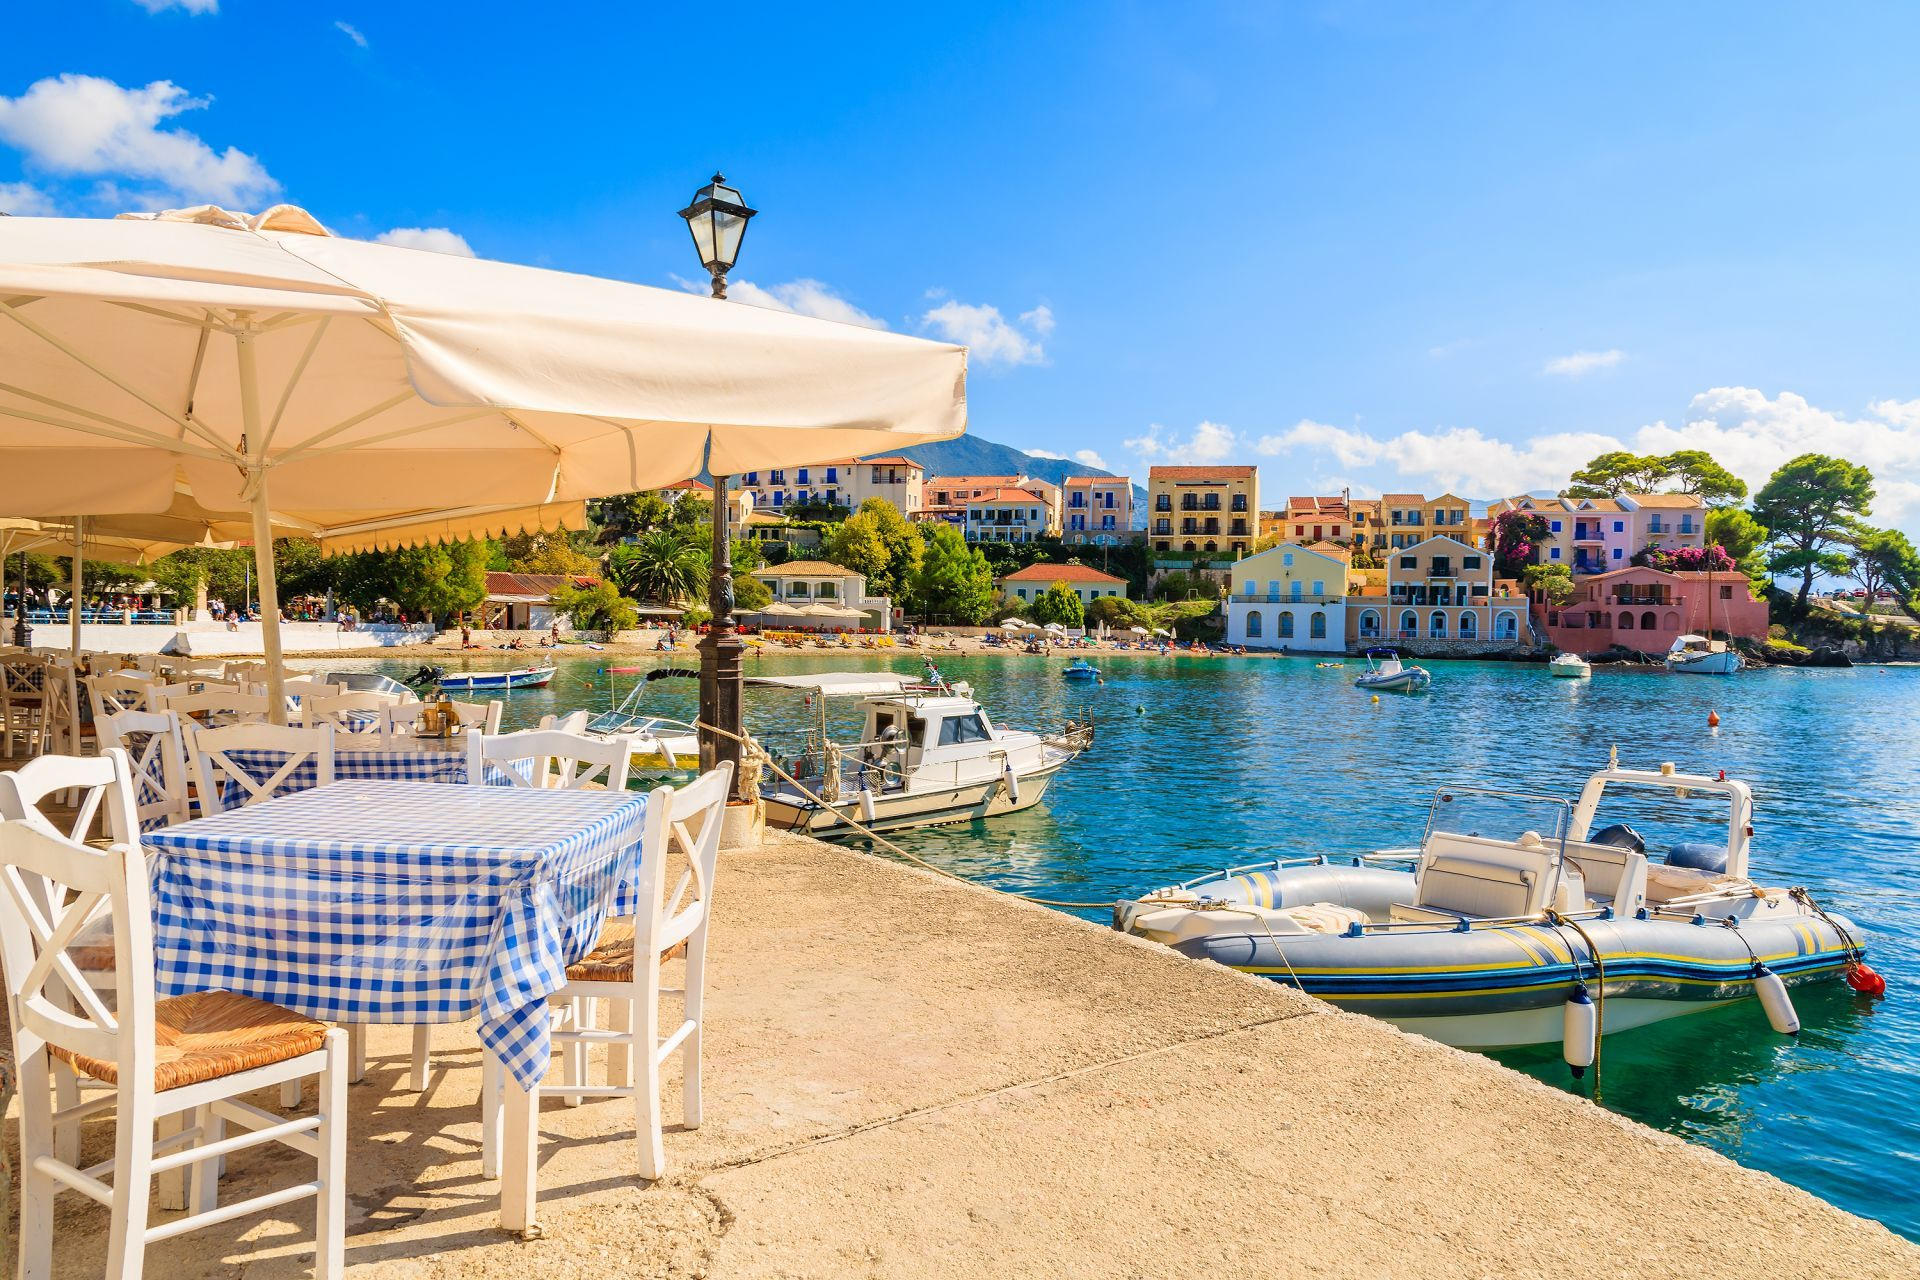 Places to eat and drink in Kefalonia